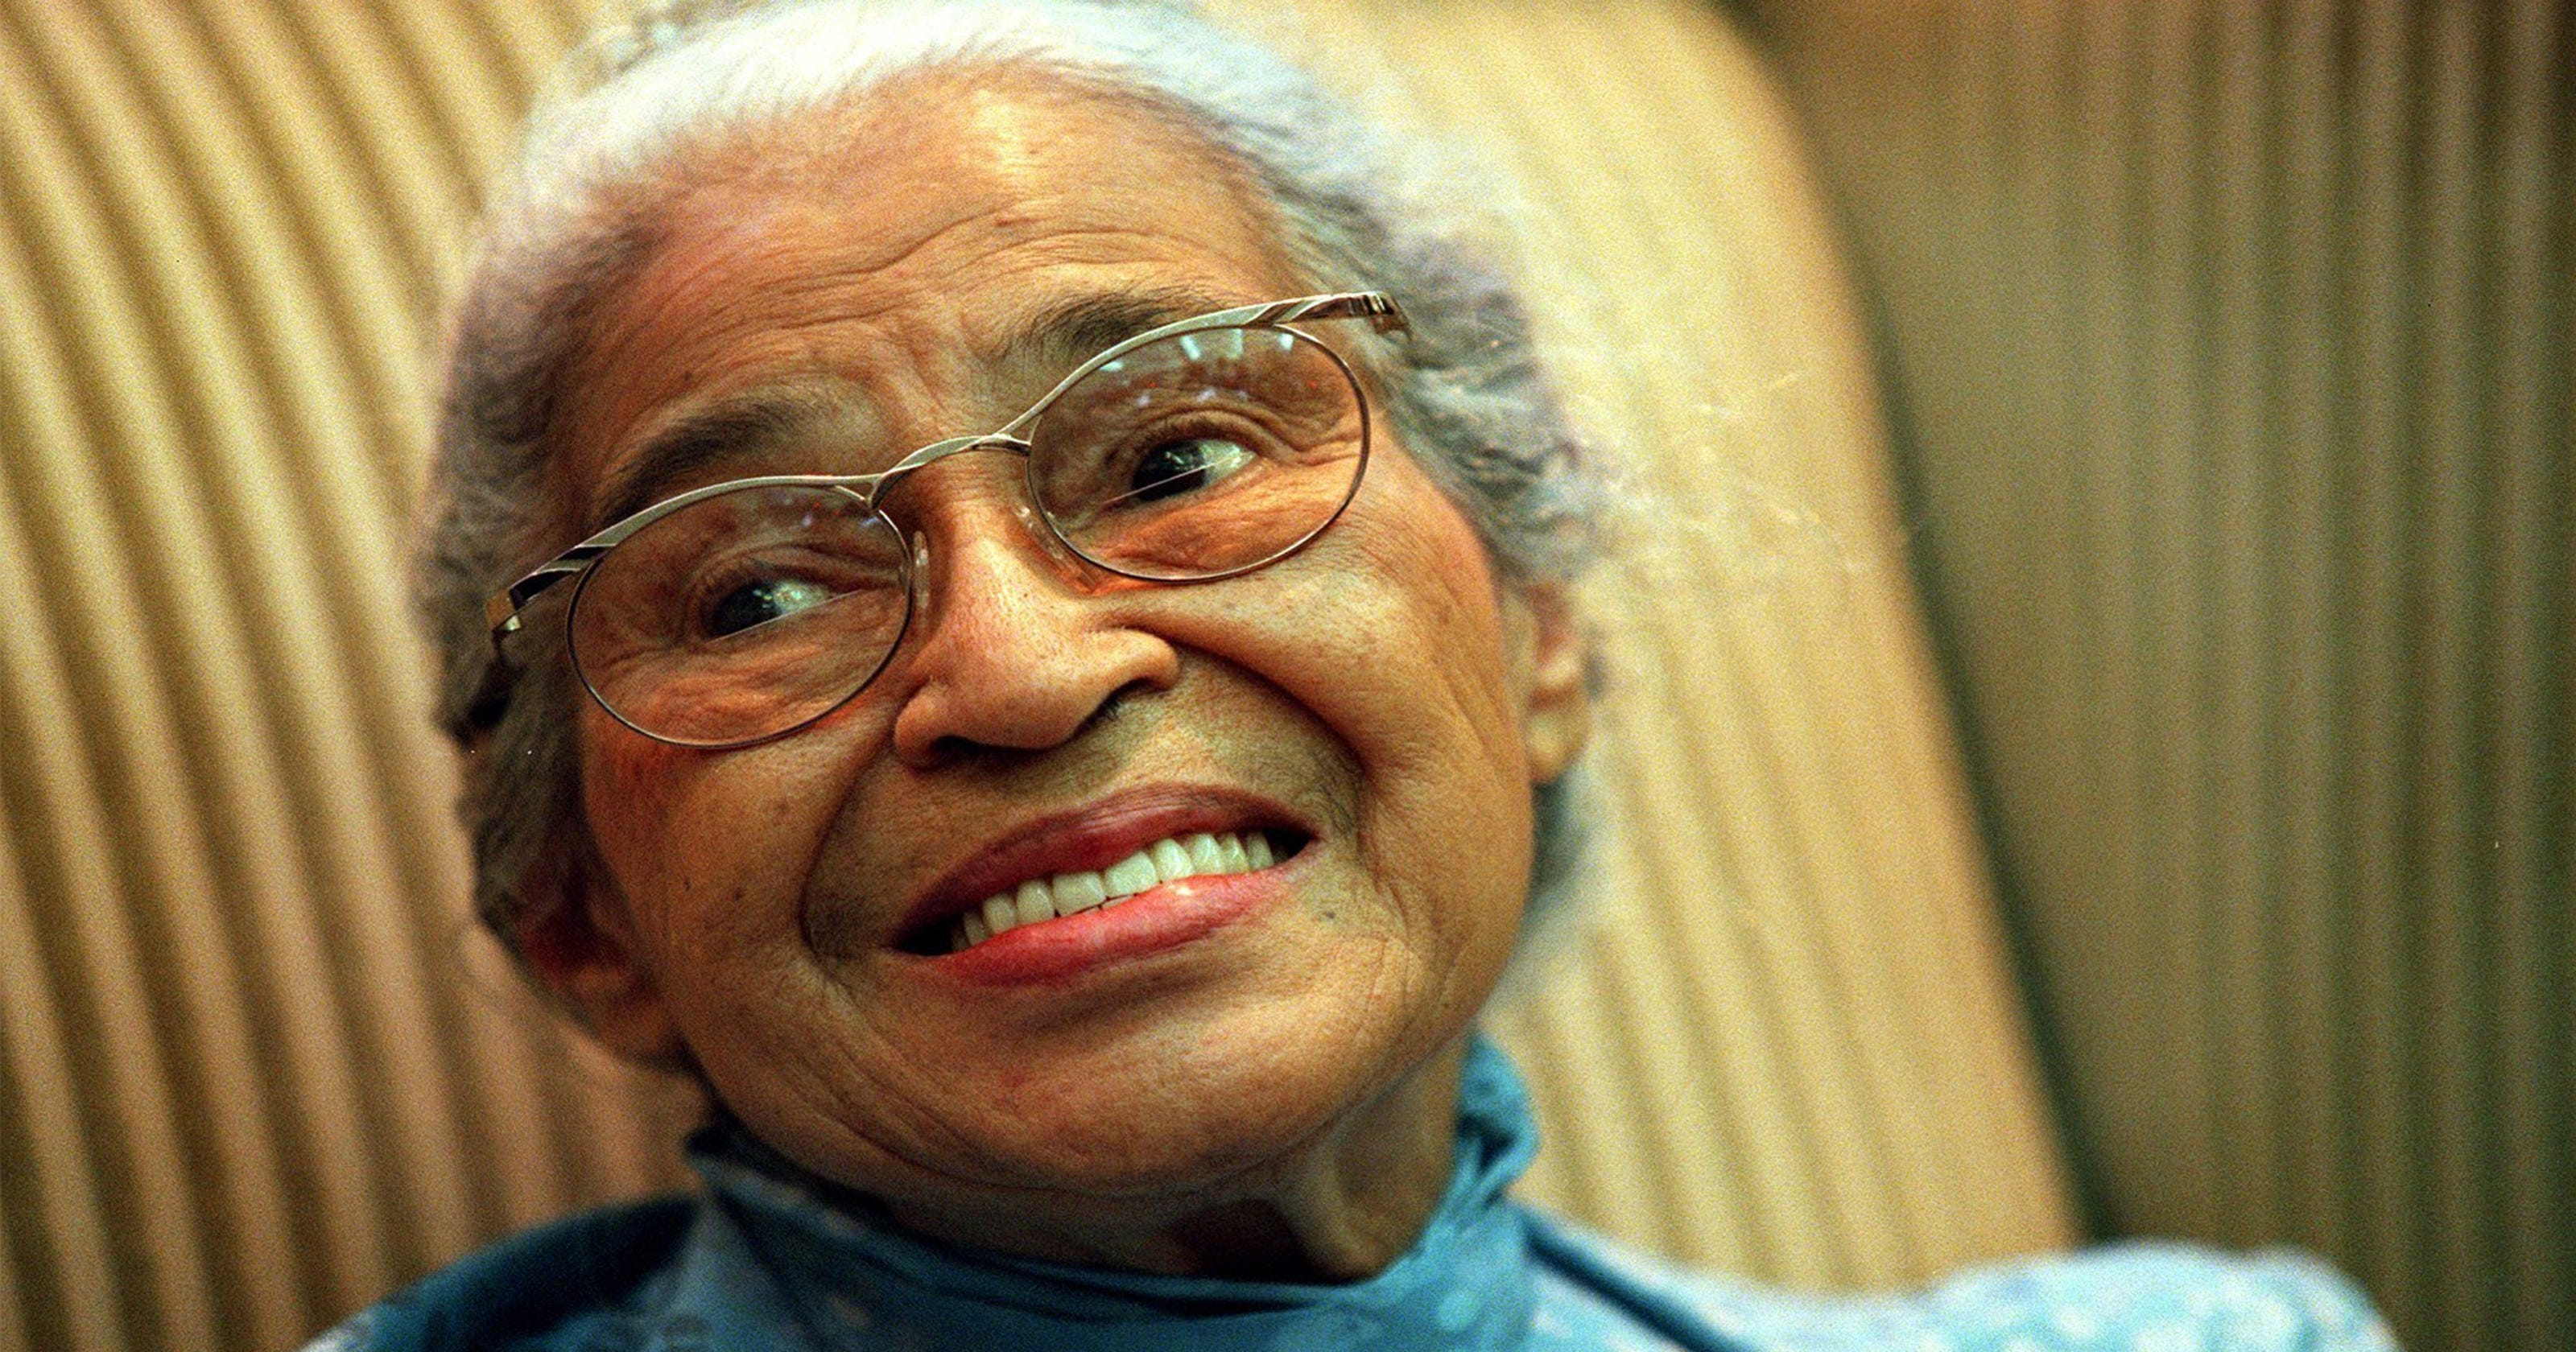 Quick Rosa Parks facts and information about Rosa Parks role in the Civil Rights Movement including the Montgomery Bus Boycott and Browder vs Gayle